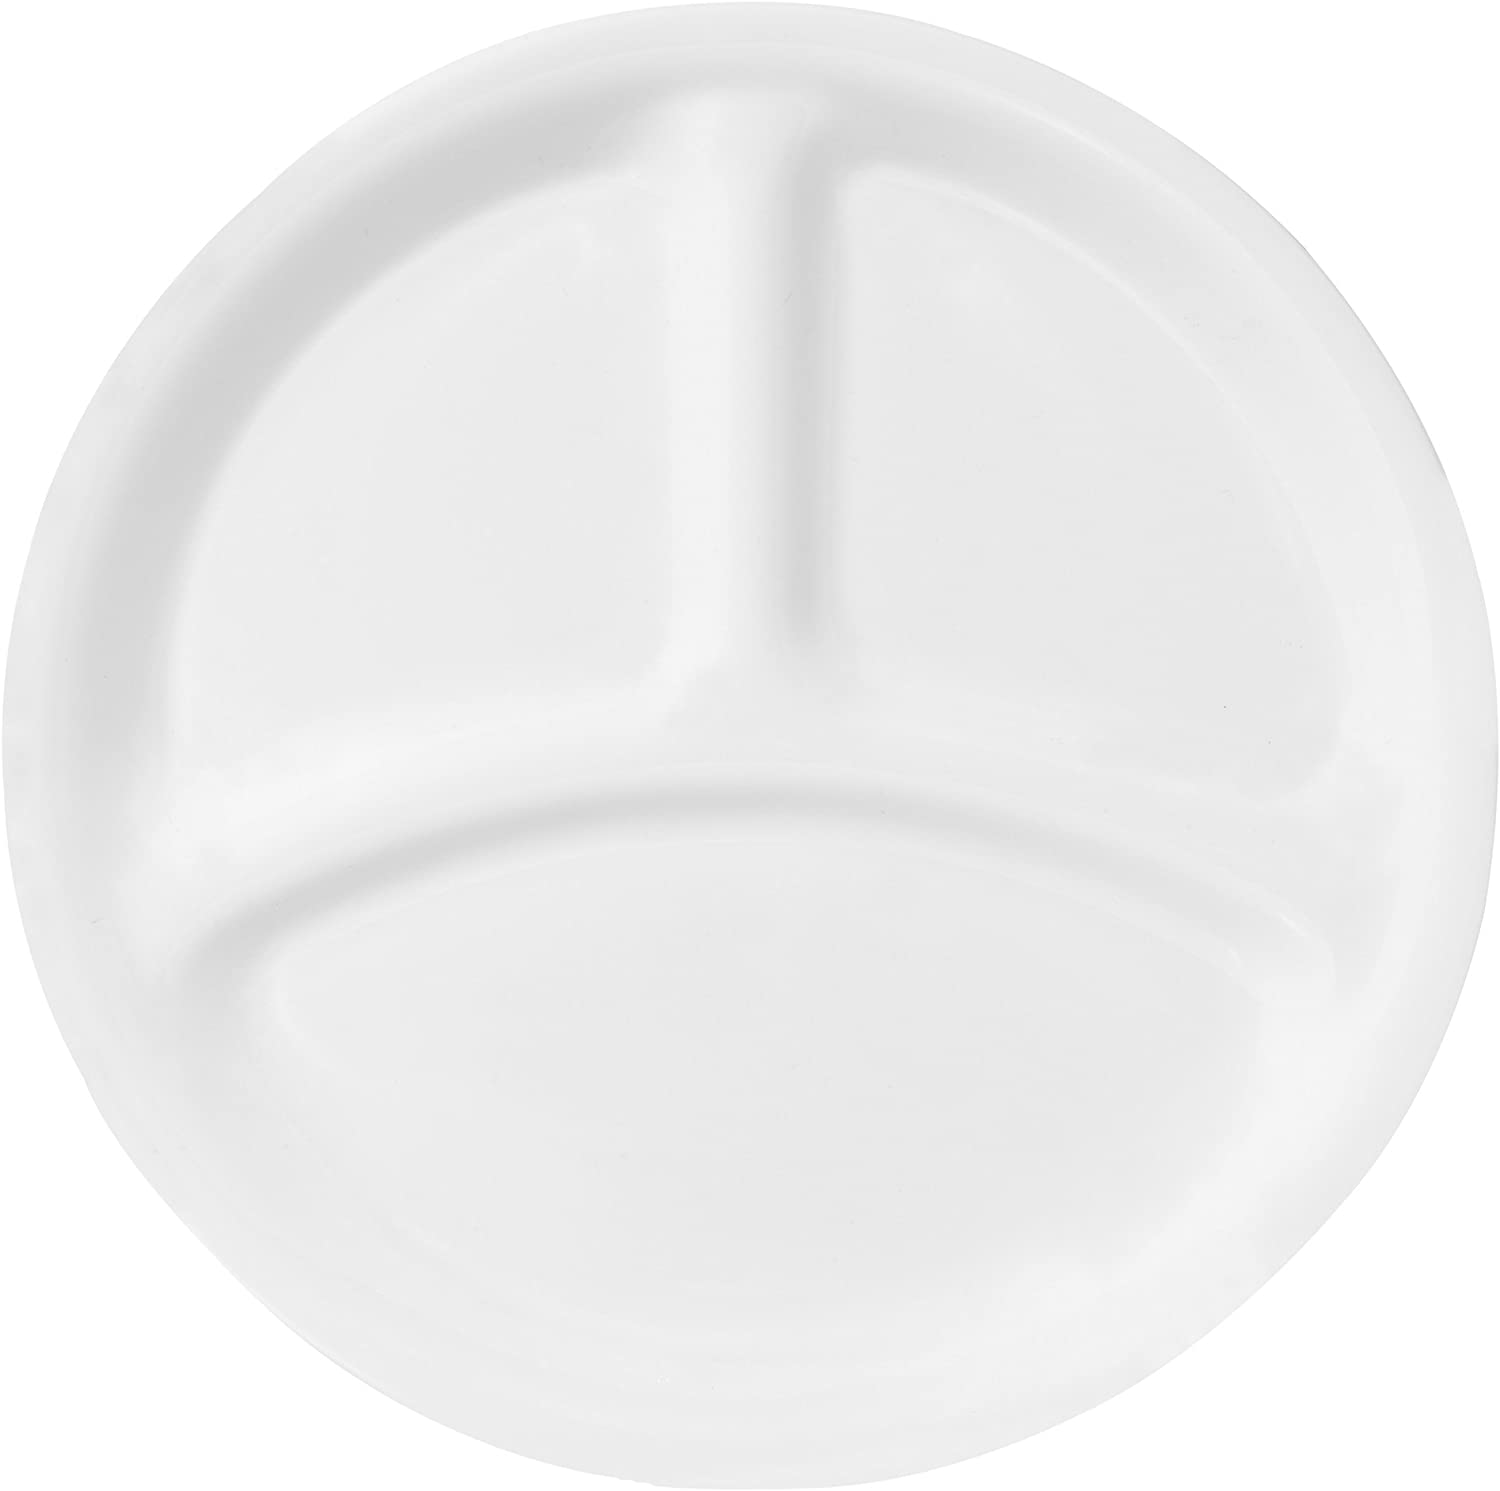   Corelle Livingware 8-1/2-Inch Divided Dish, Winter Frost White: Divided Serving Trays: Divided Trays & Platters